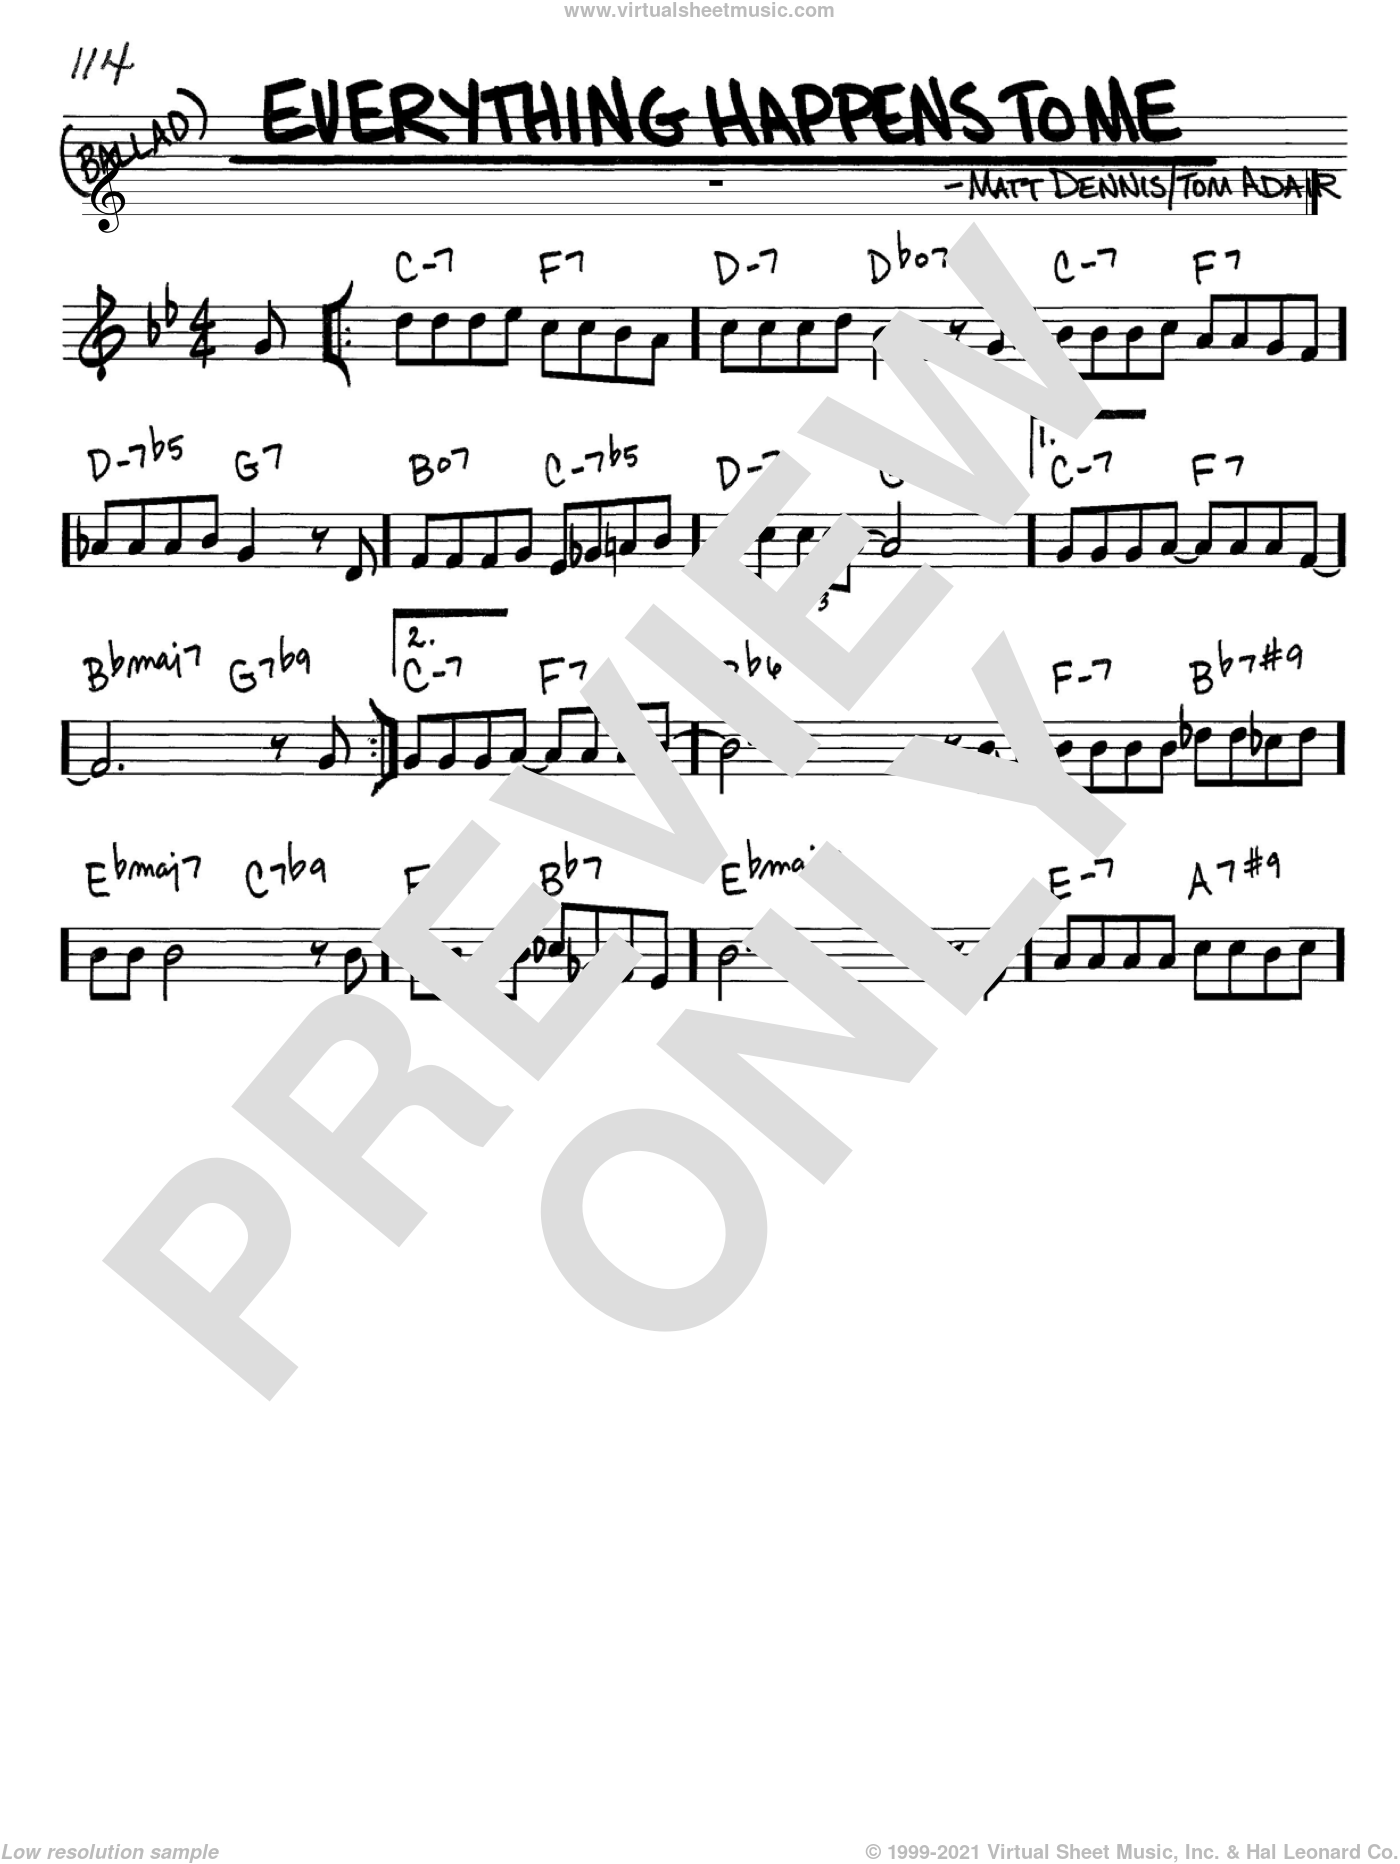 Everything Happens To Me sheet music for voice and other instruments (in C) by Frank Sinatra, Matt Dennis and Tom Adair, intermediate skill level